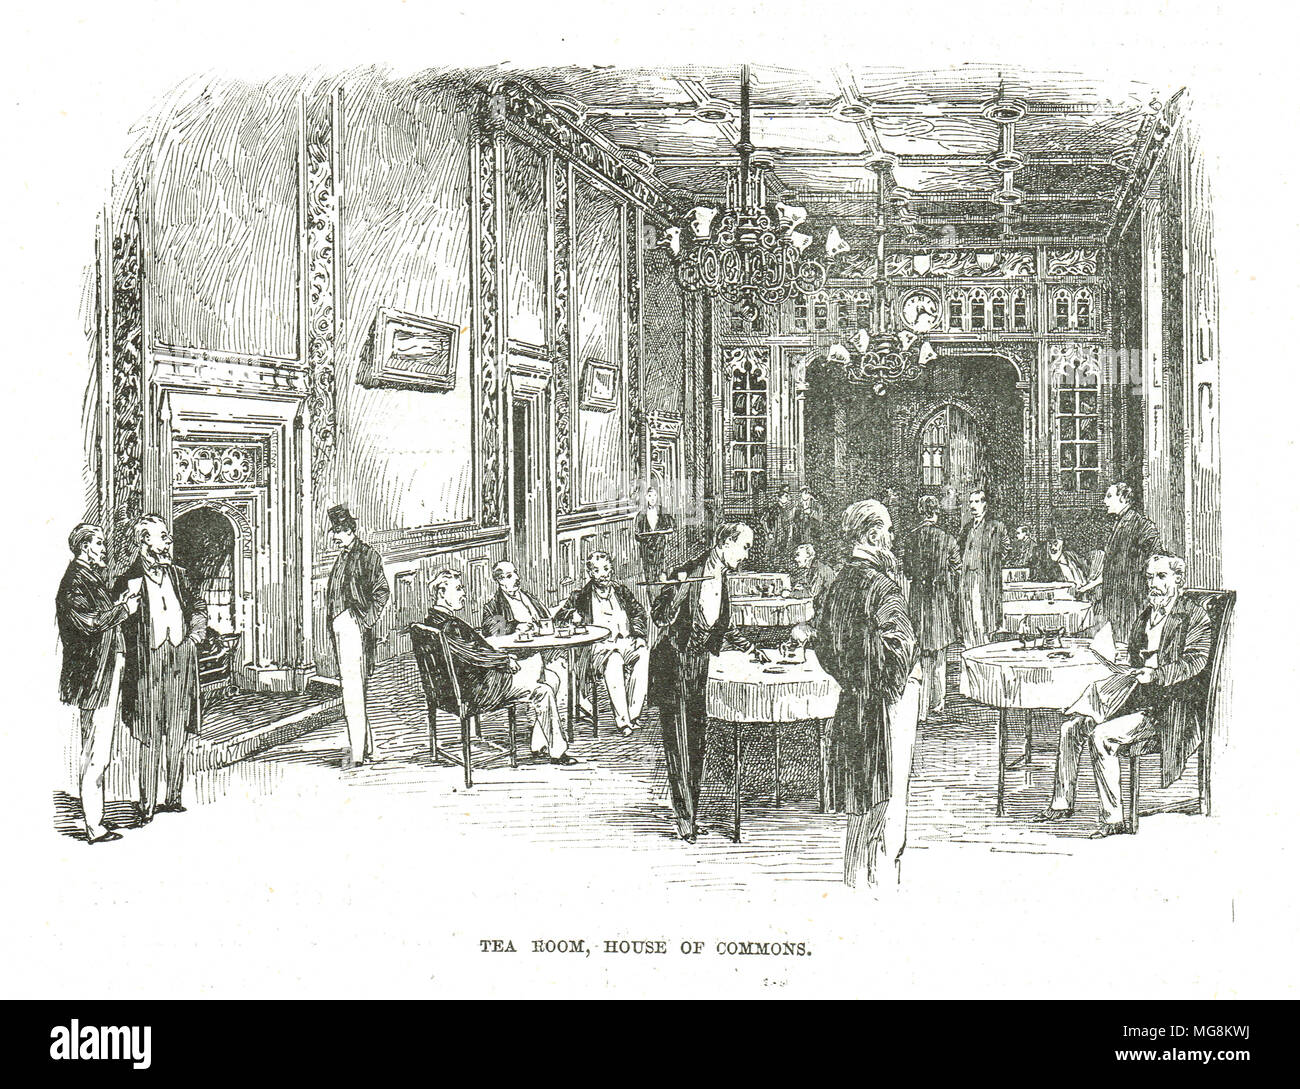 Tea Room, House of Commons, 19th Century, palace of Westminster, London, England - Stock Image